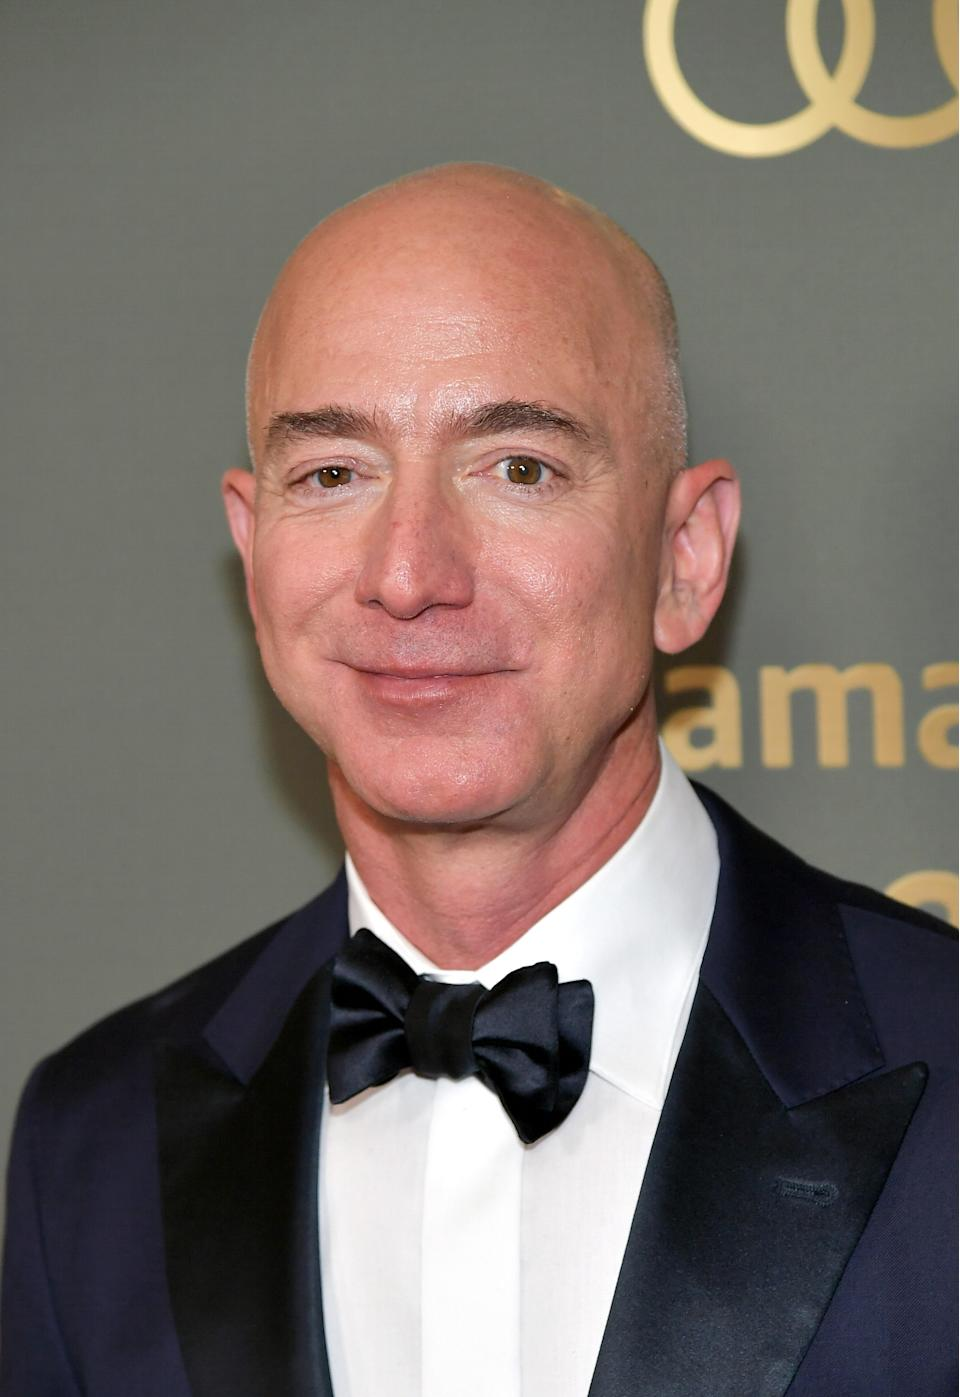 In late 1993, Bezos decided to establish an online bookstore. He left his job at D. E. Shaw and founded Amazon in his garage on July 5, 1994, after writing its business plan on a cross-country drive from New York City to Seattle. Bezos initially named his new company Cadabra but later changed the name to Amazon after the Amazon River in South America.